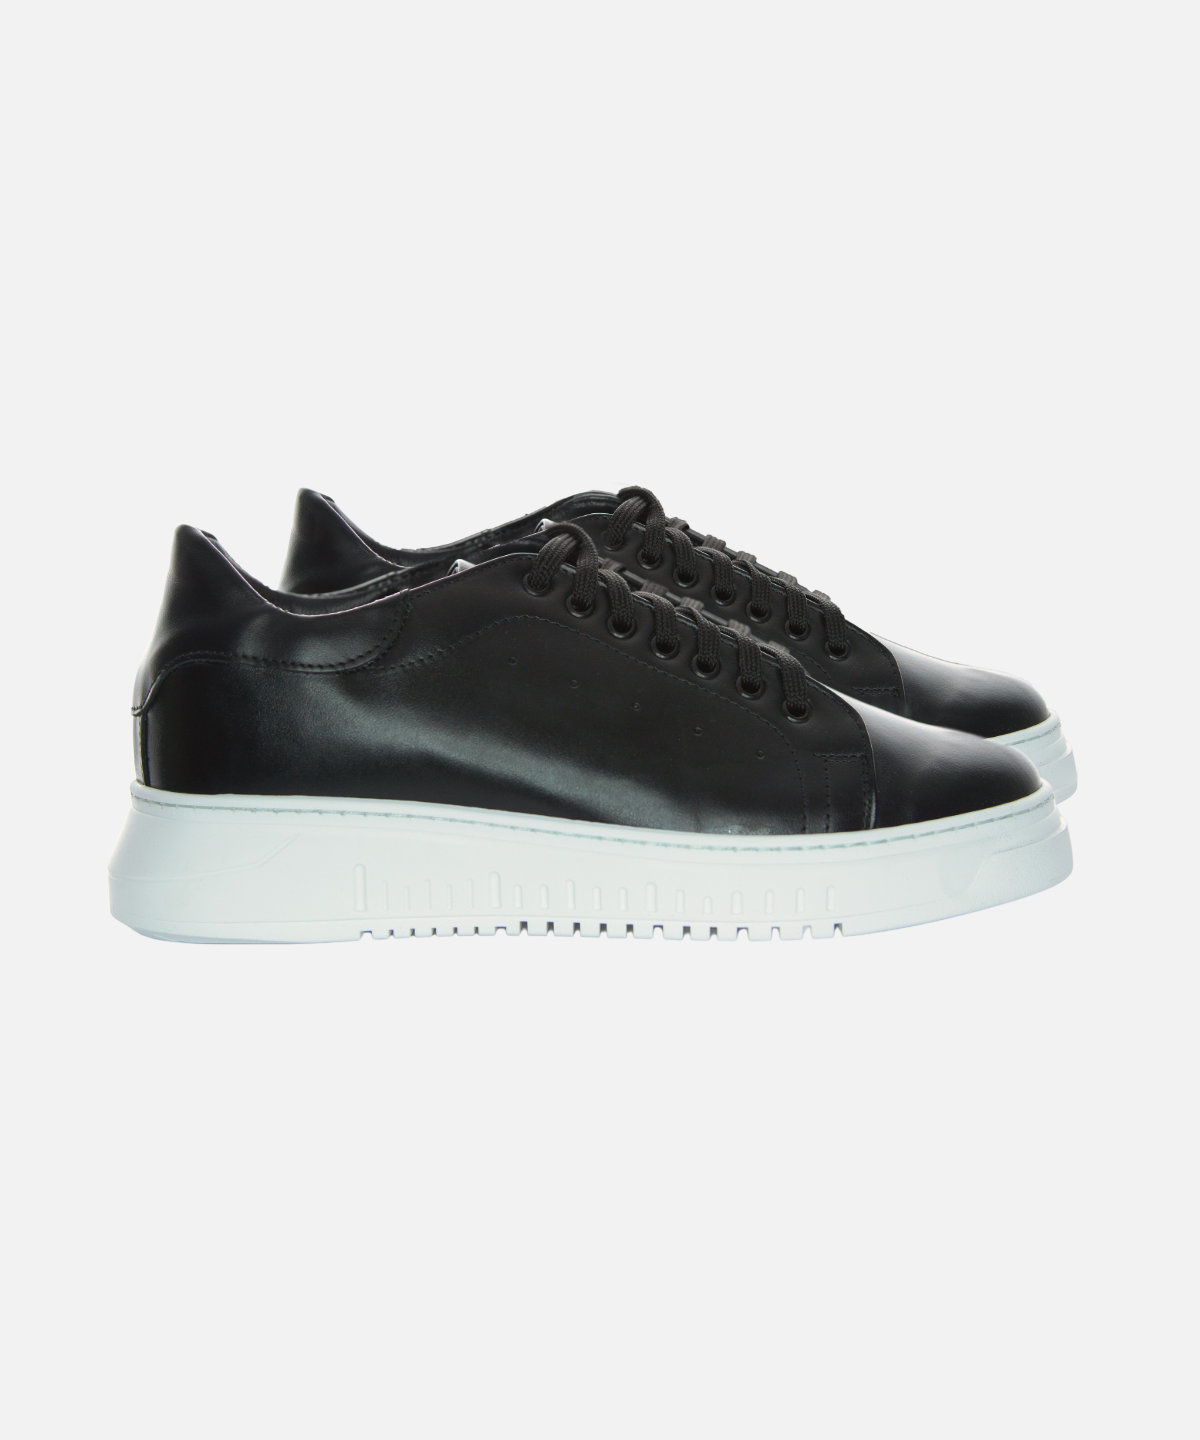 Made in Italy MadeInItaly Sneakers DELMO-PELLE Black